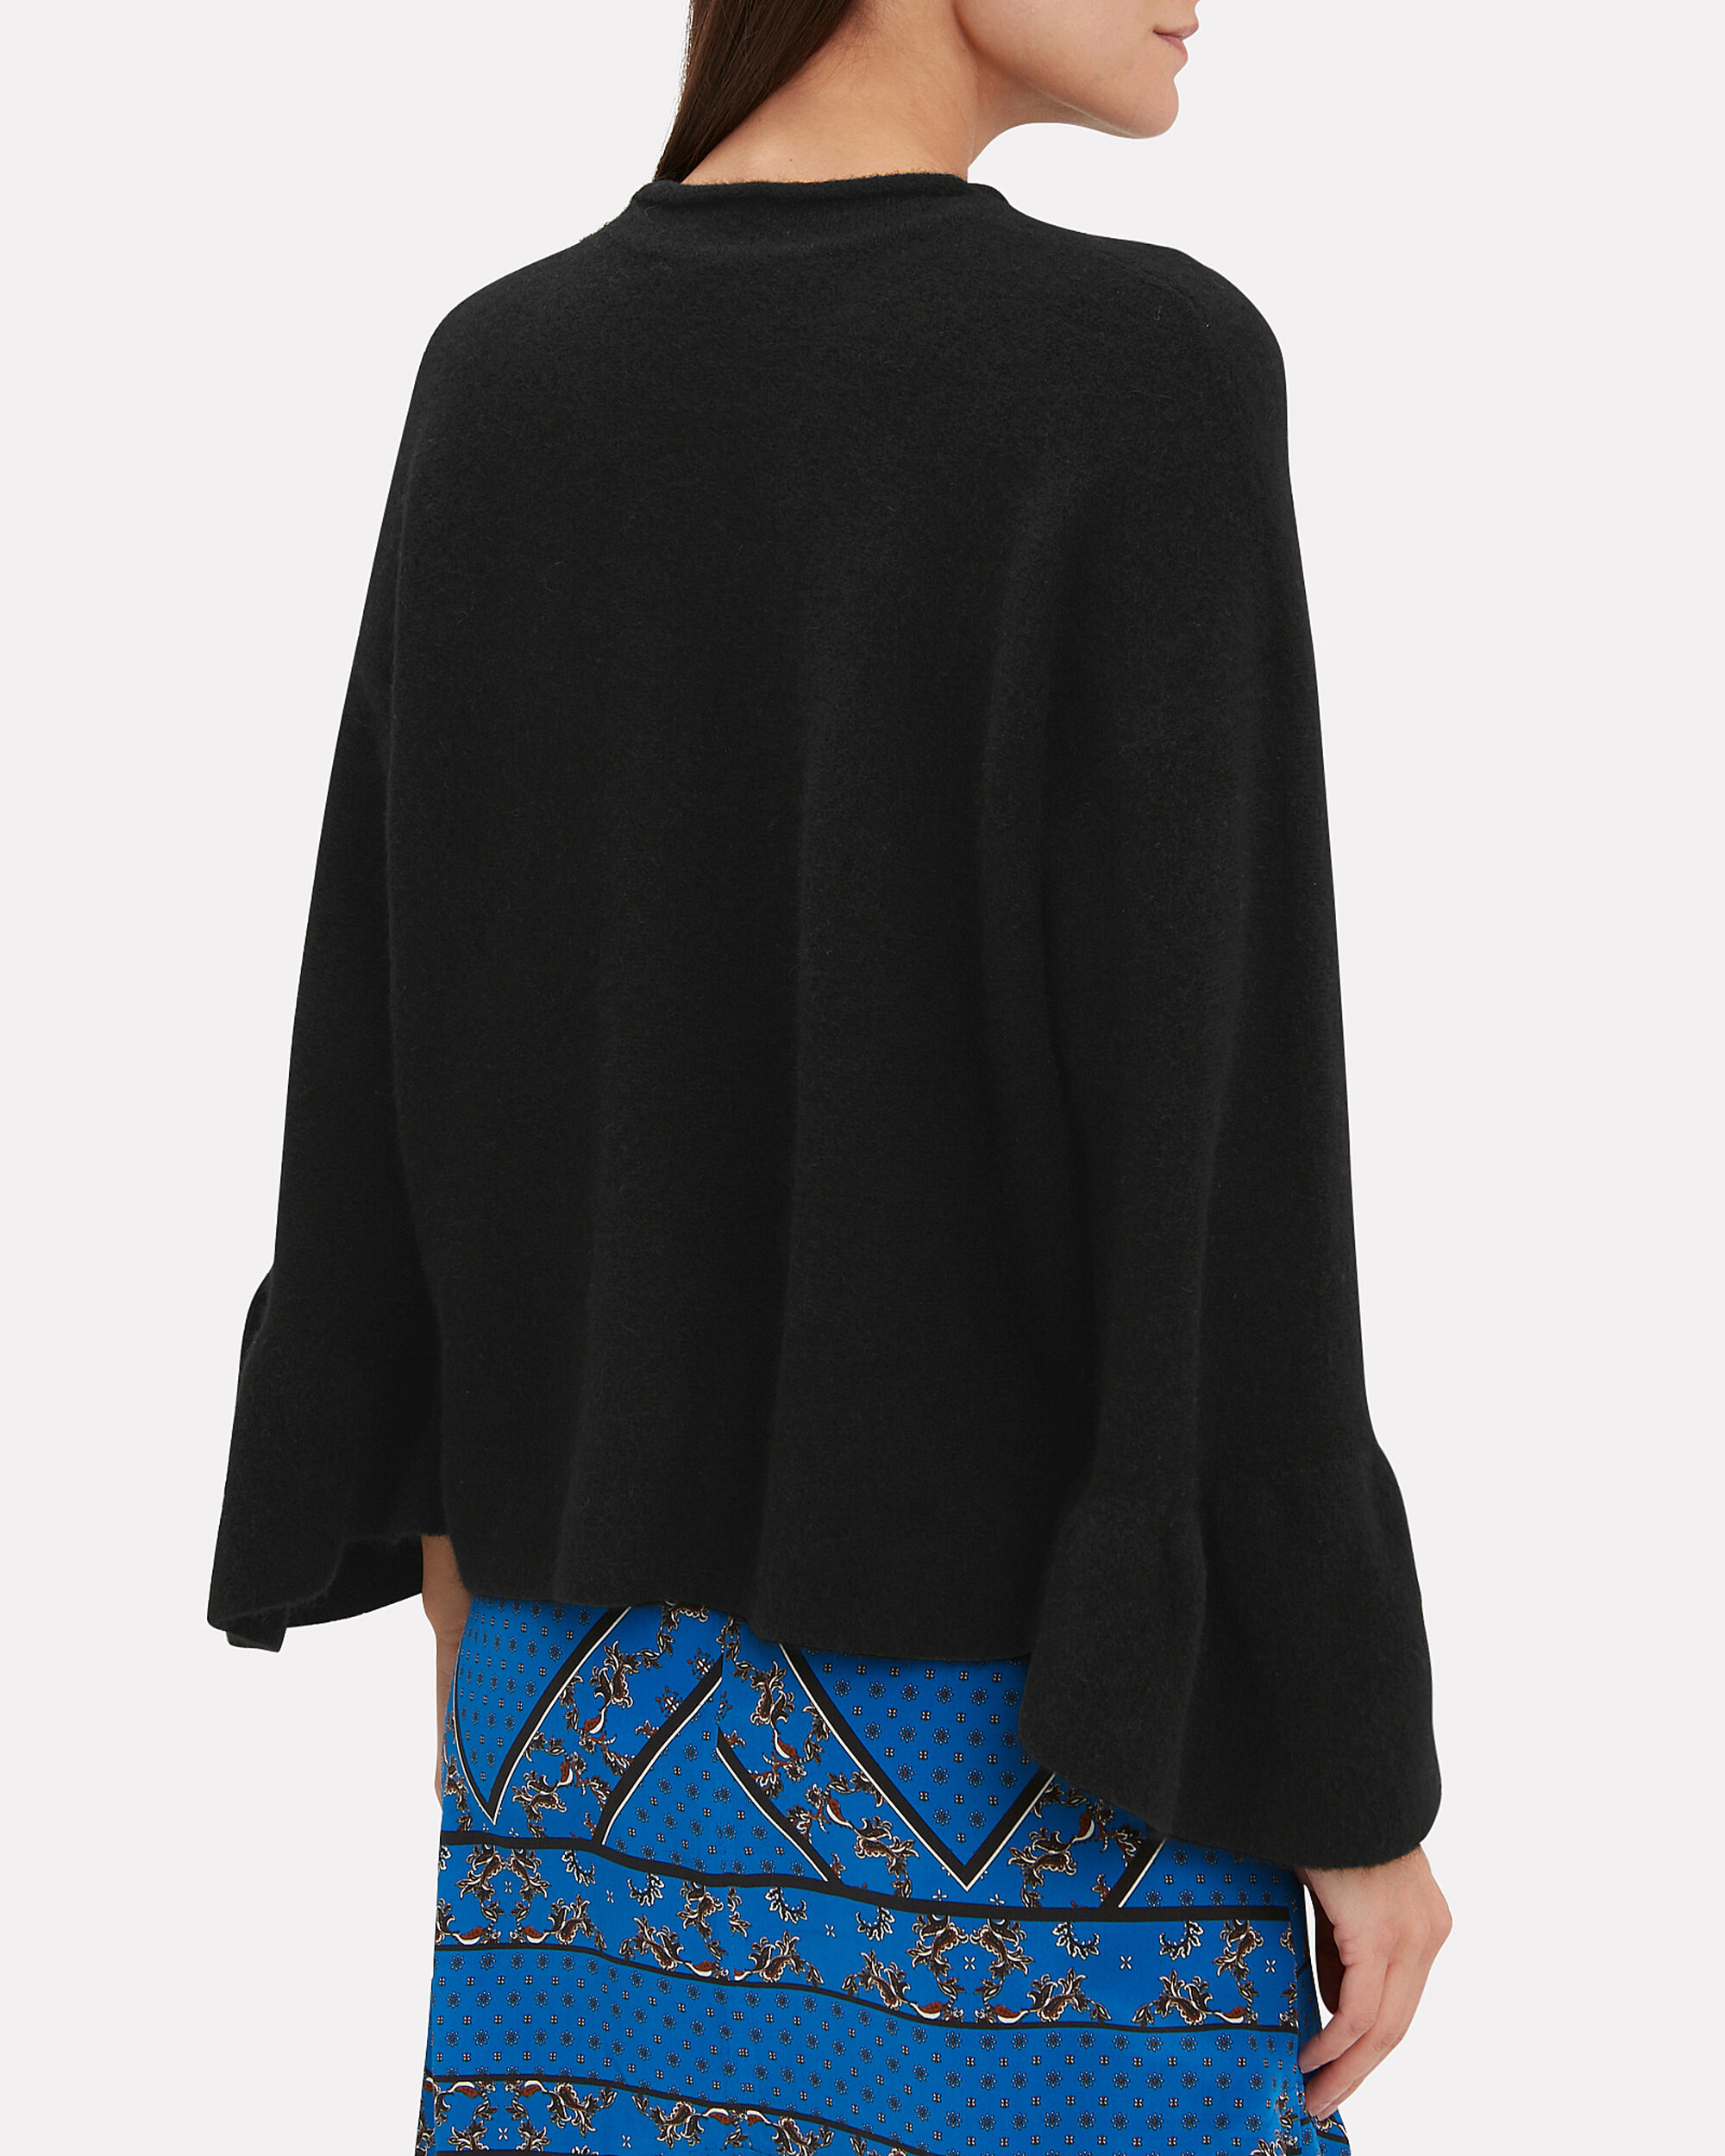 Ruffle Sleeve Black Sweater, BLACK, hi-res